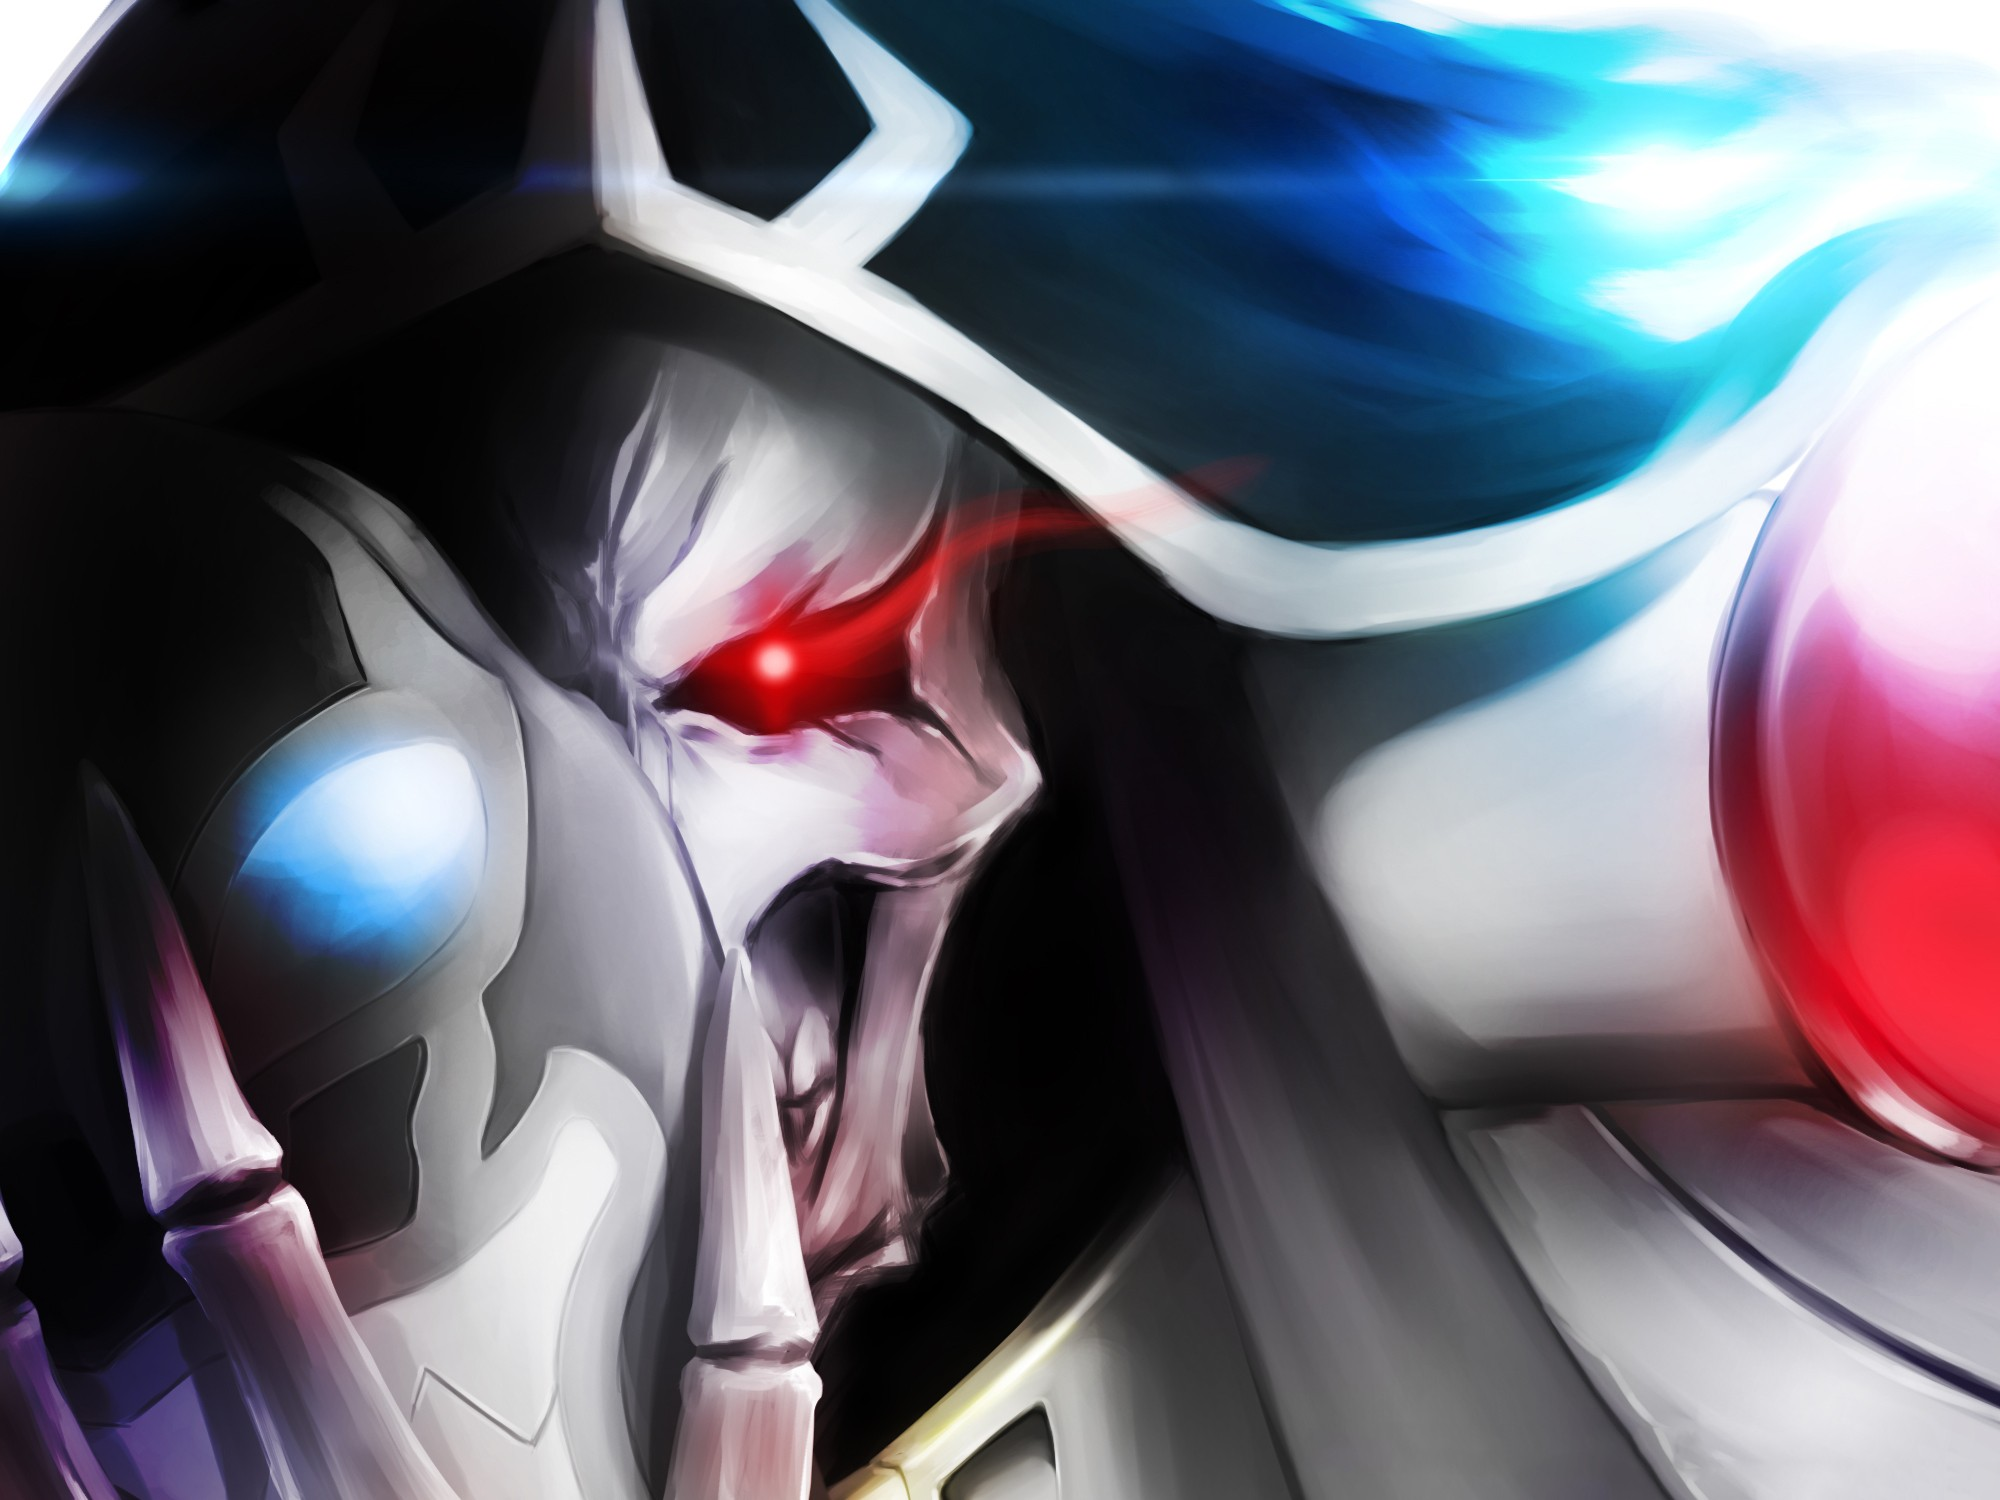 Overlord anime wallpaper download free stunning - Wallpaper hd 1920x1080 anime ...